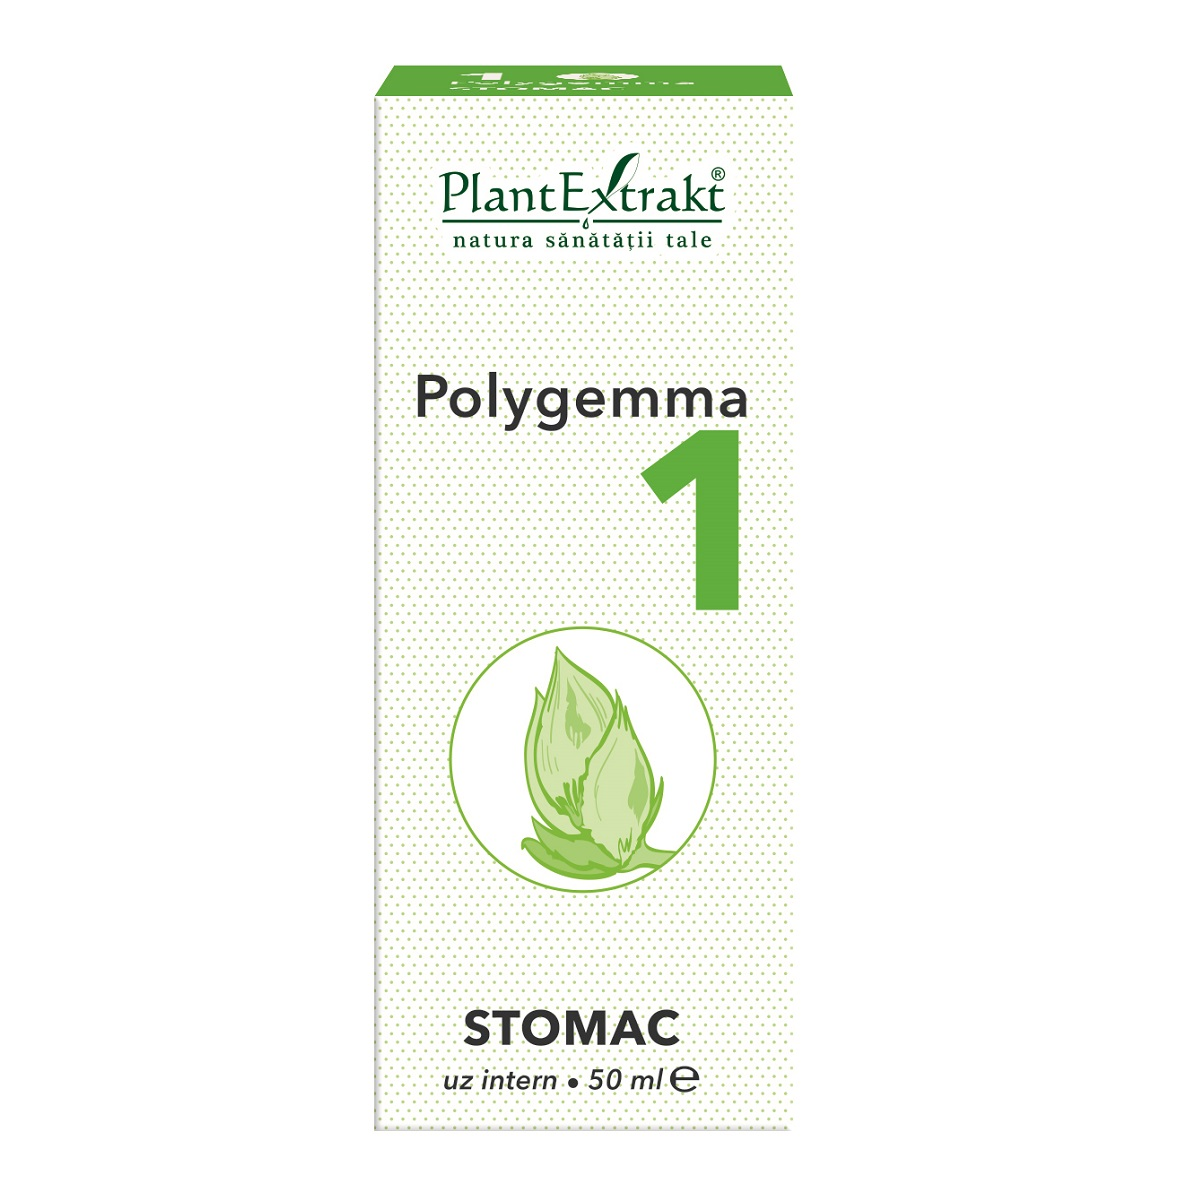 Polygemma 1 Stomac, 50ml, Plant Extrakt imagine produs 2021